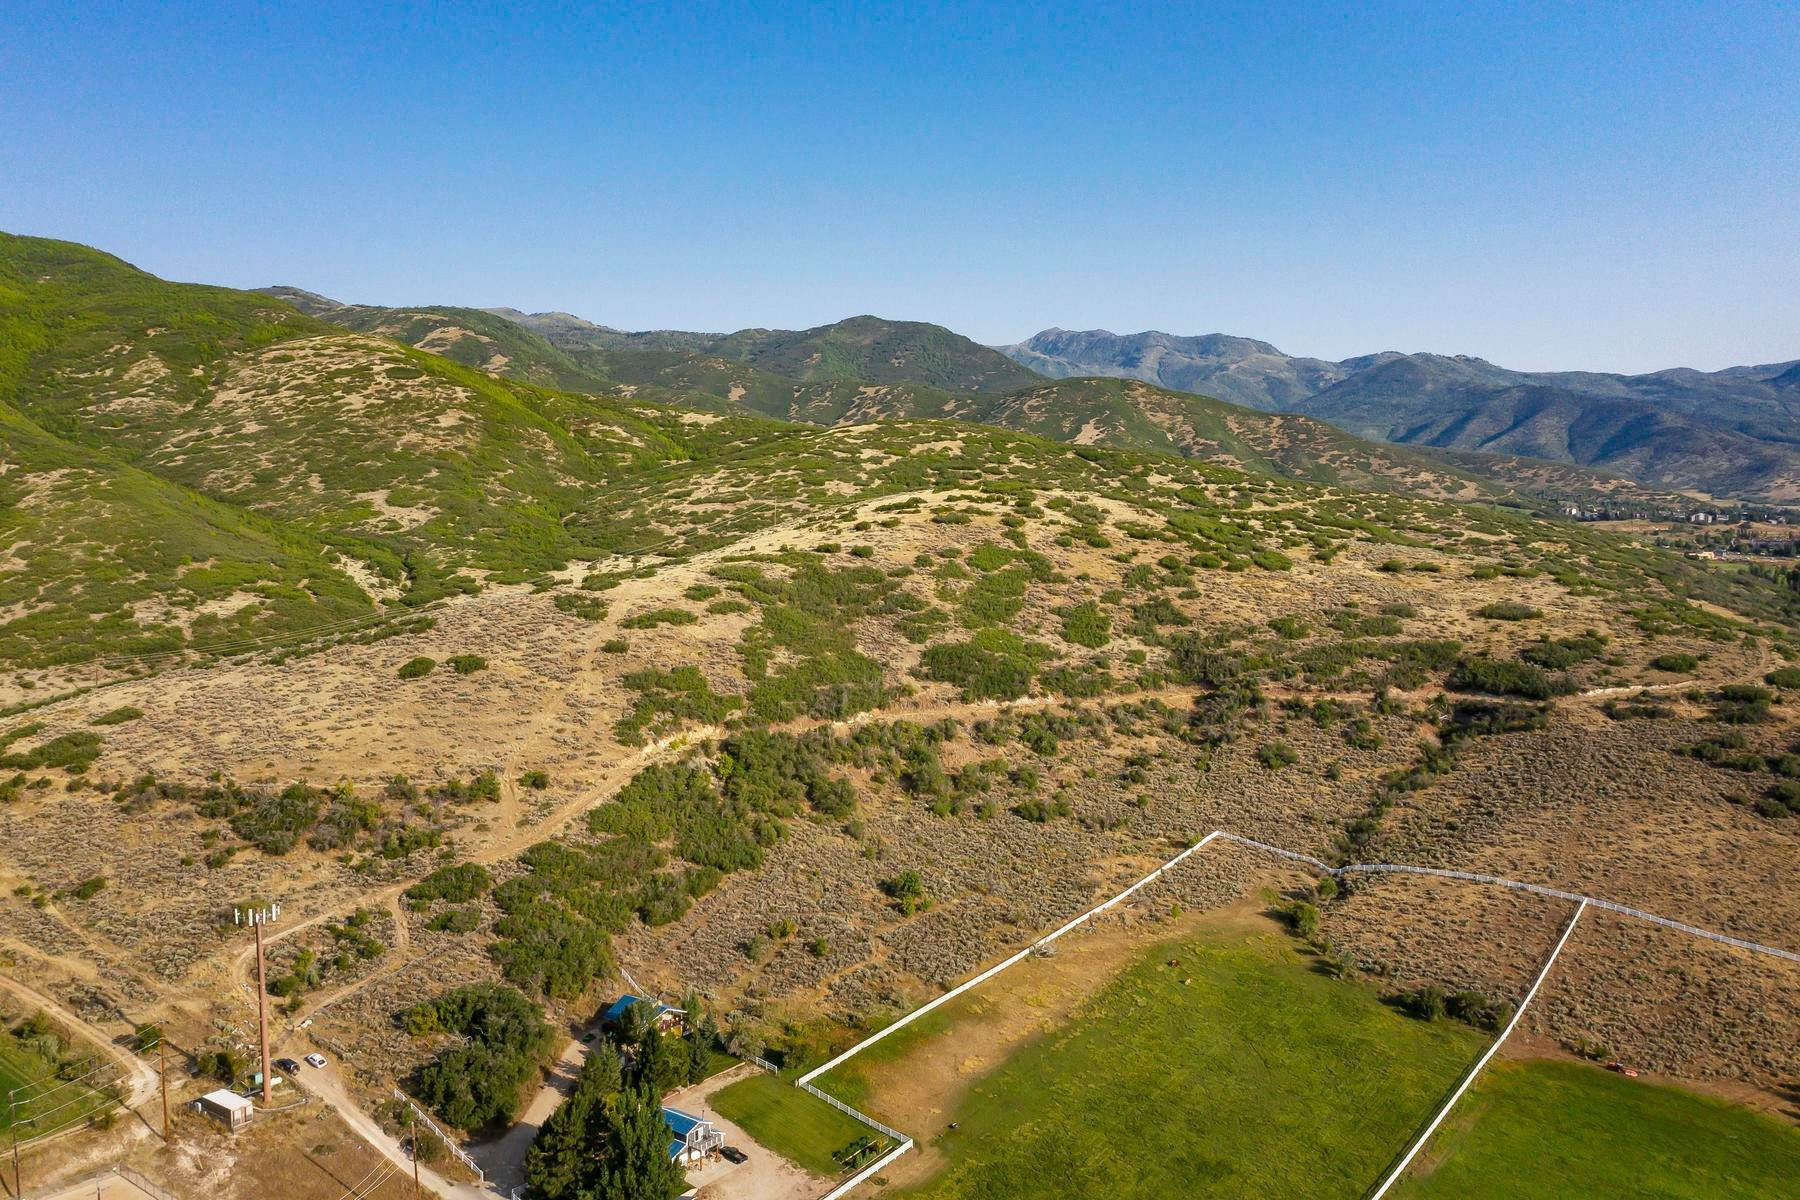 5. Land for Sale at 67 Acres in Midway with Huge Views of the Heber Valley 800 W 500 S Midway, Utah 84049 United States